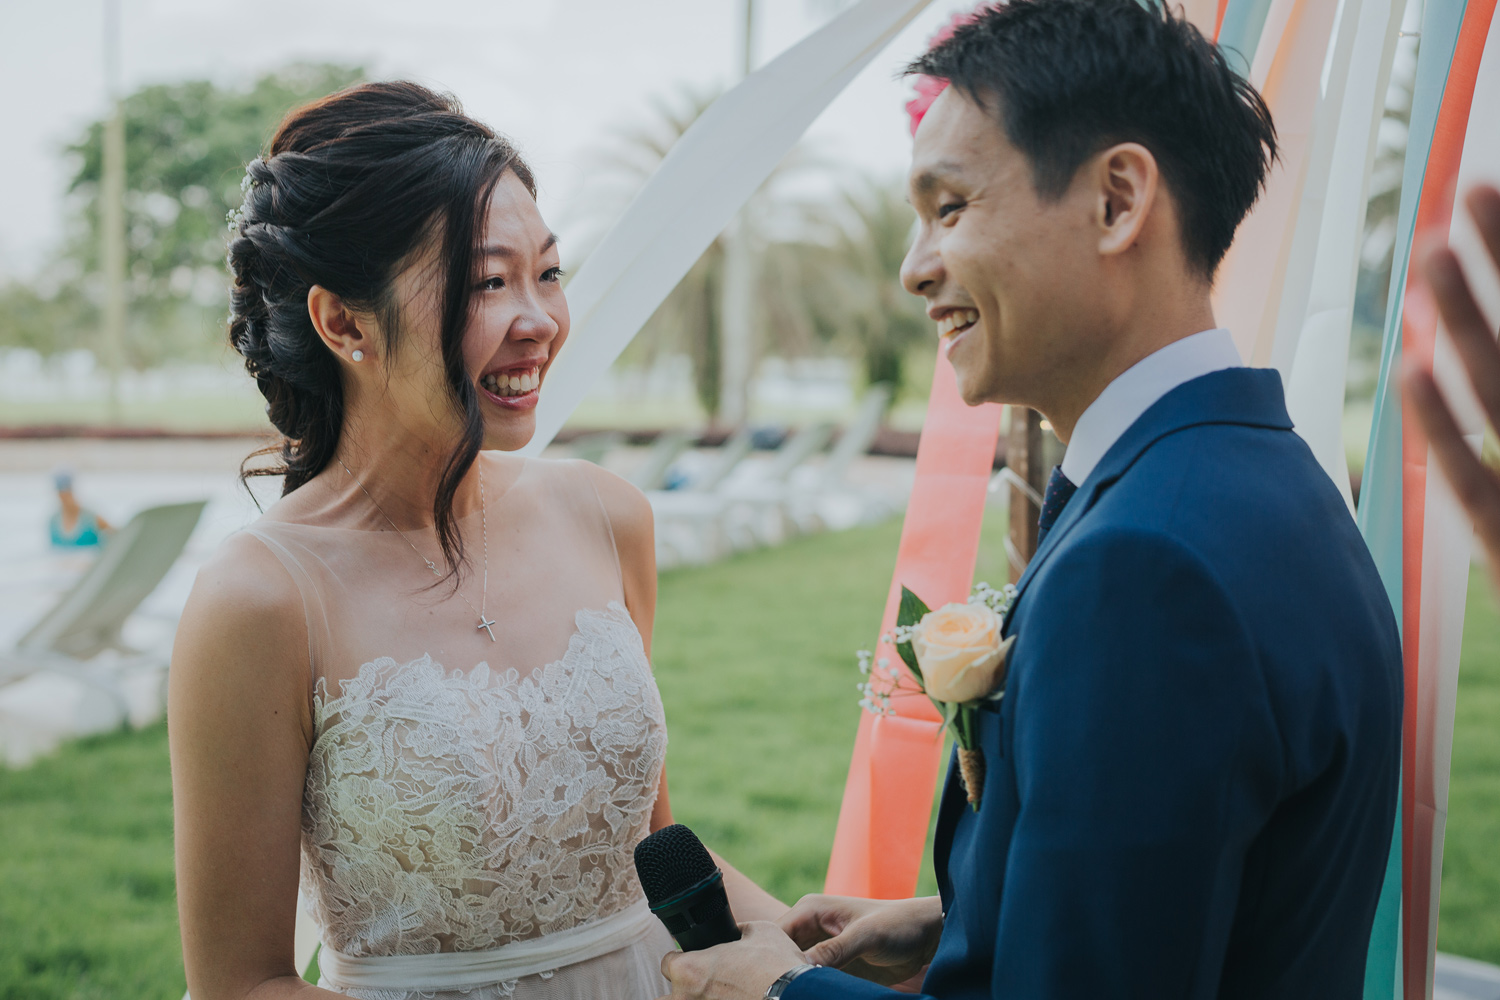 bittersweet photography Singapore wedding photographer jonathan 100